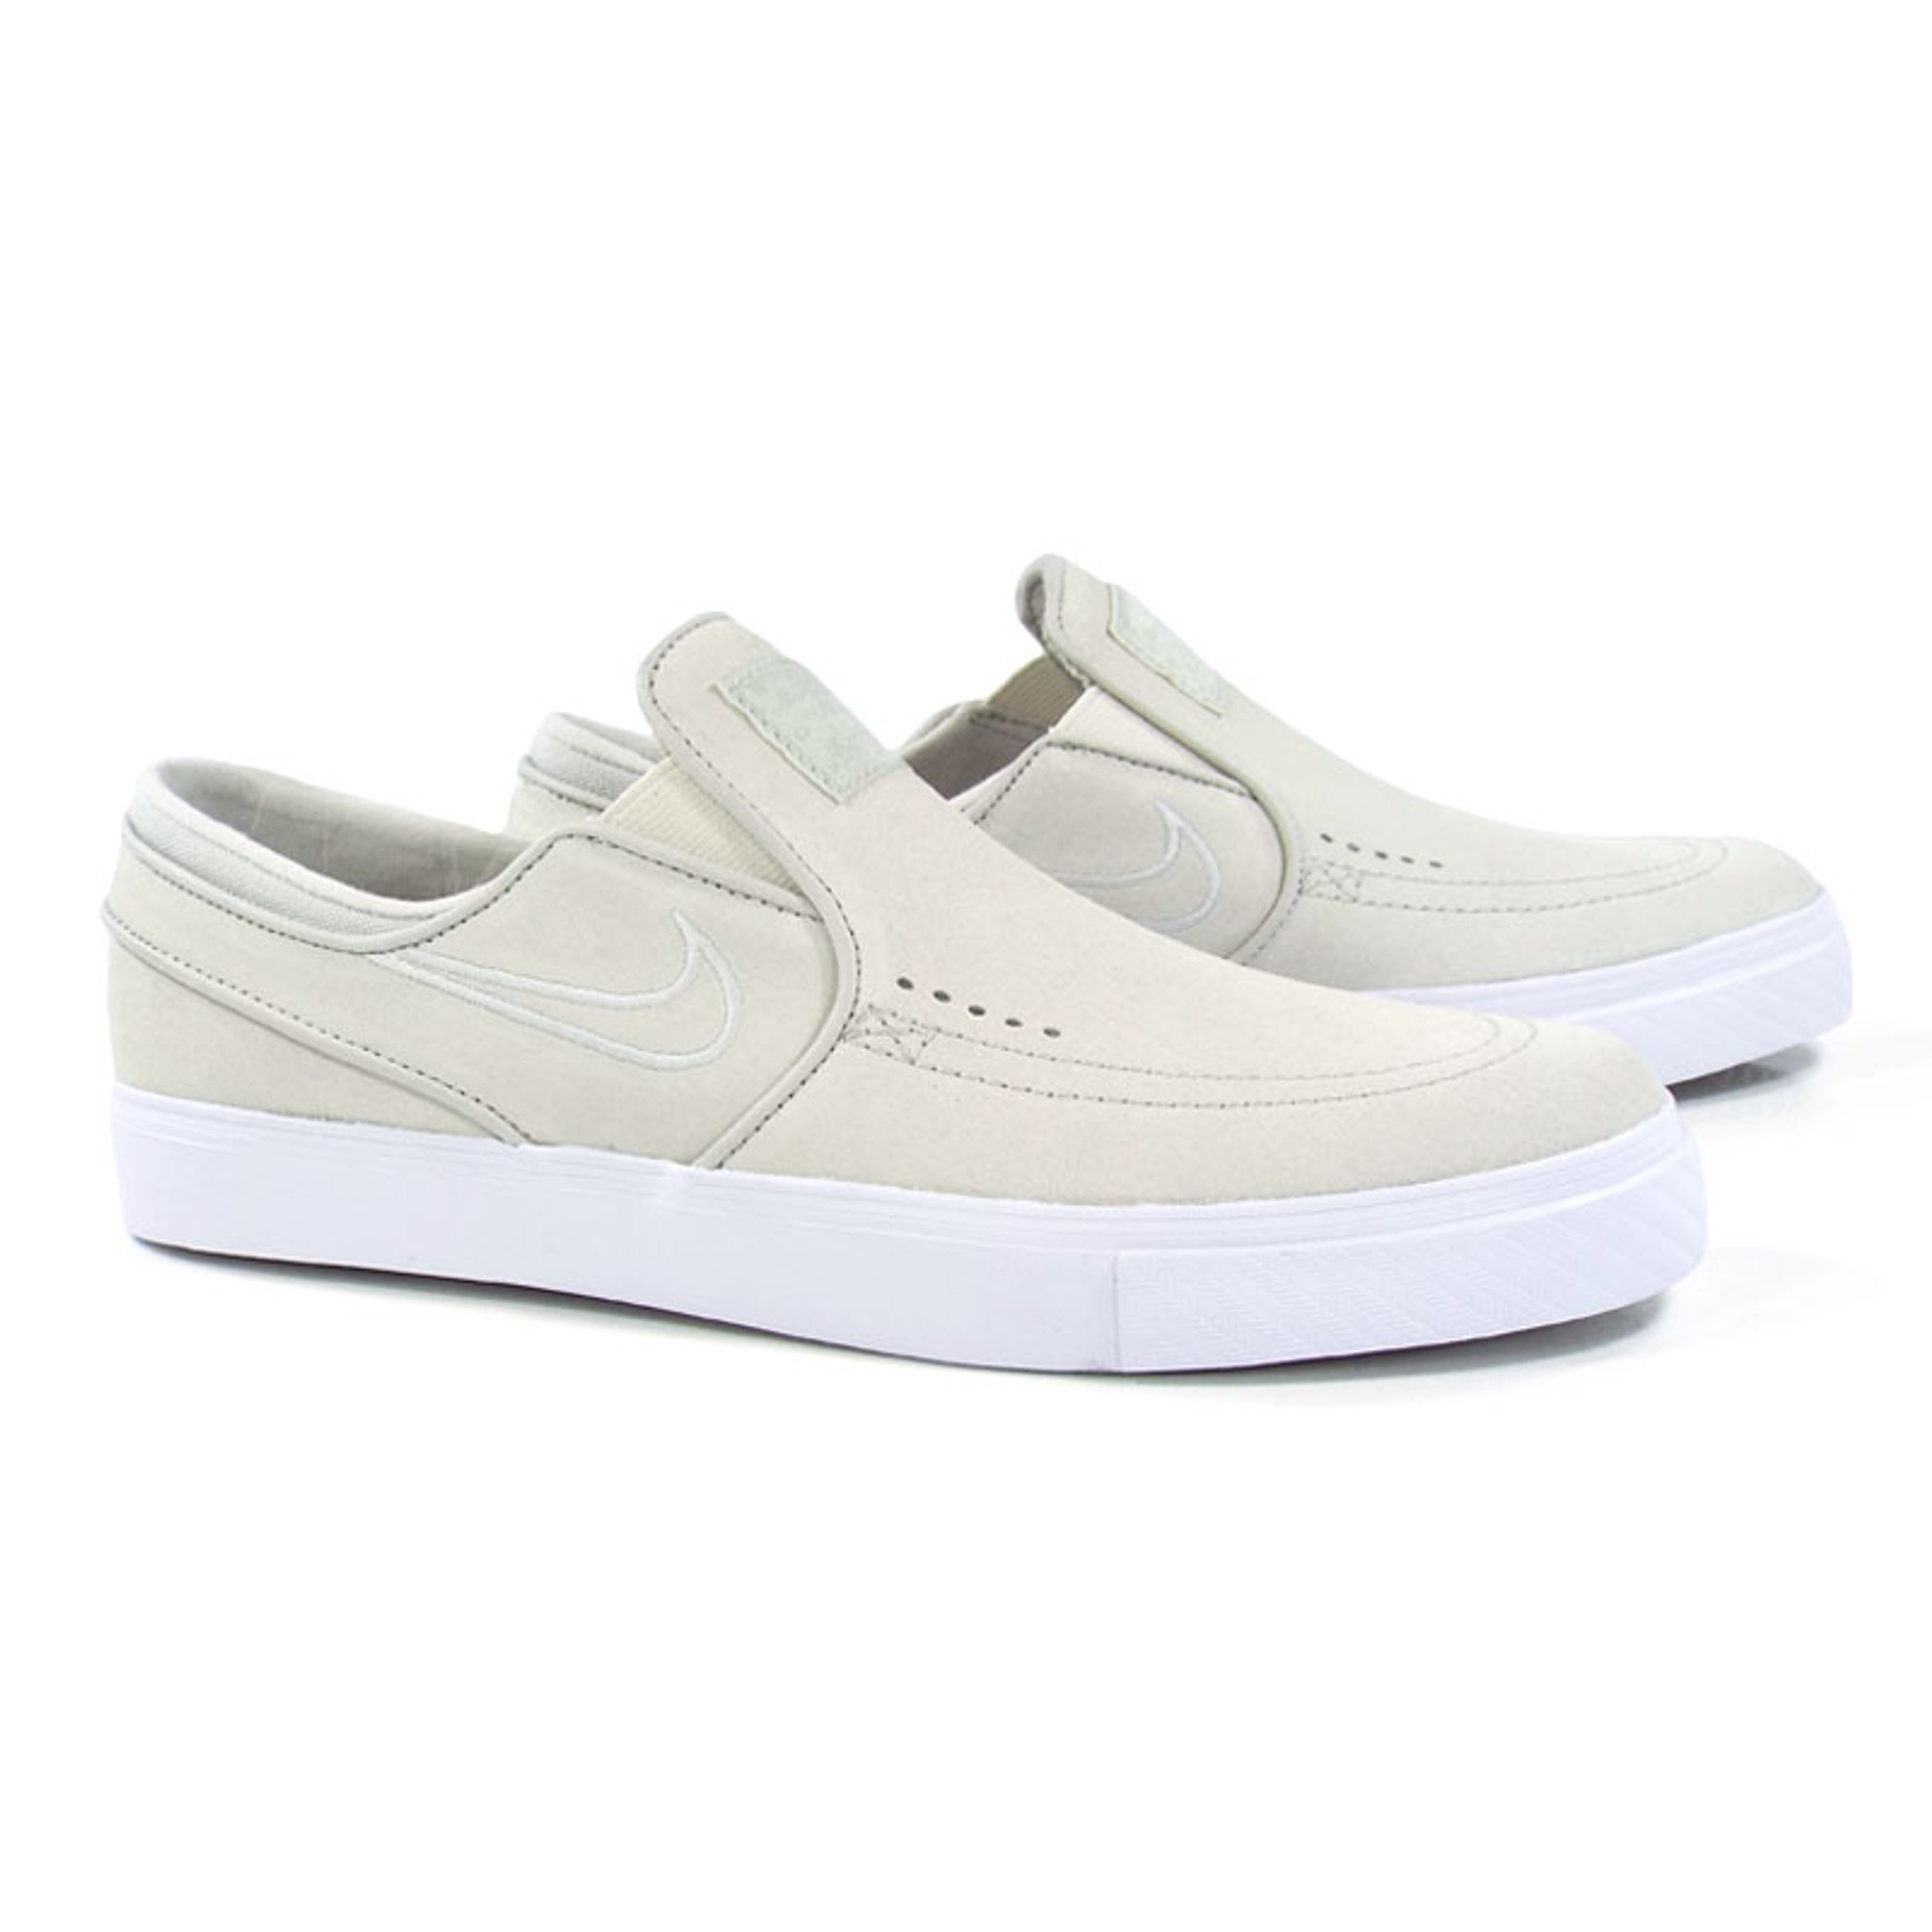 low priced 507c4 99ca5 Nike SB Zoom Stefan Janoski Slip Shoes - White Light Bones-White